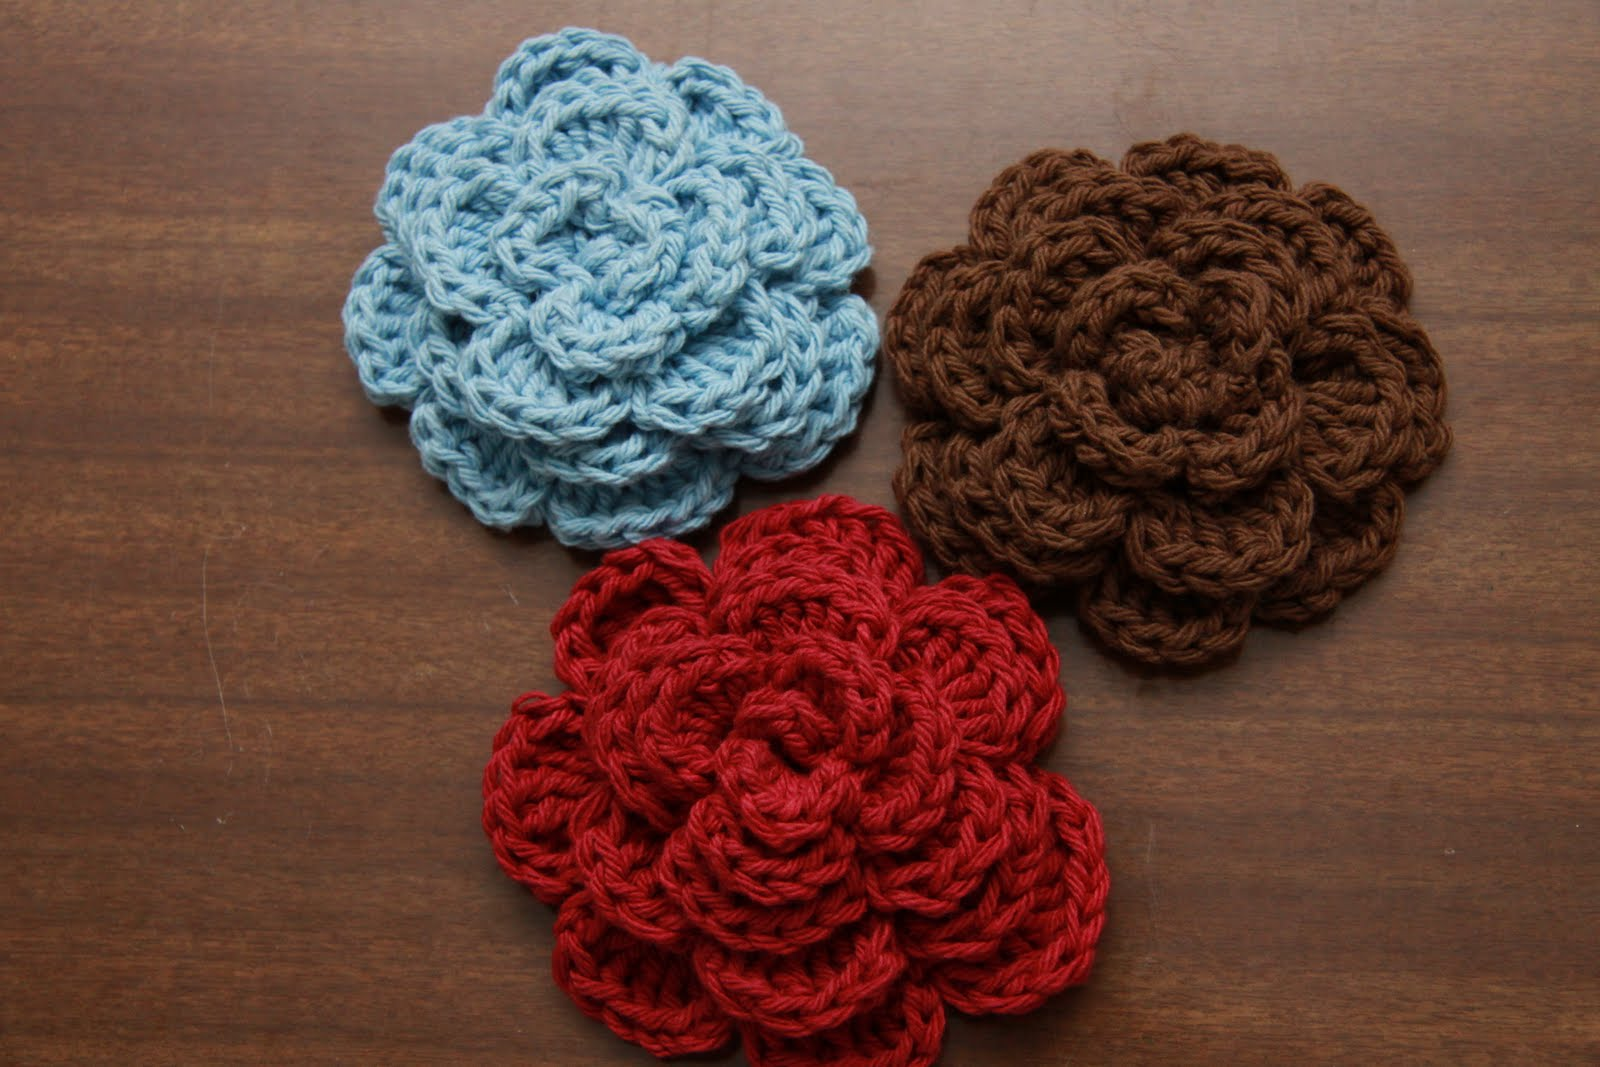 Crazy 4 Crafting: Crochet Hair Accessories